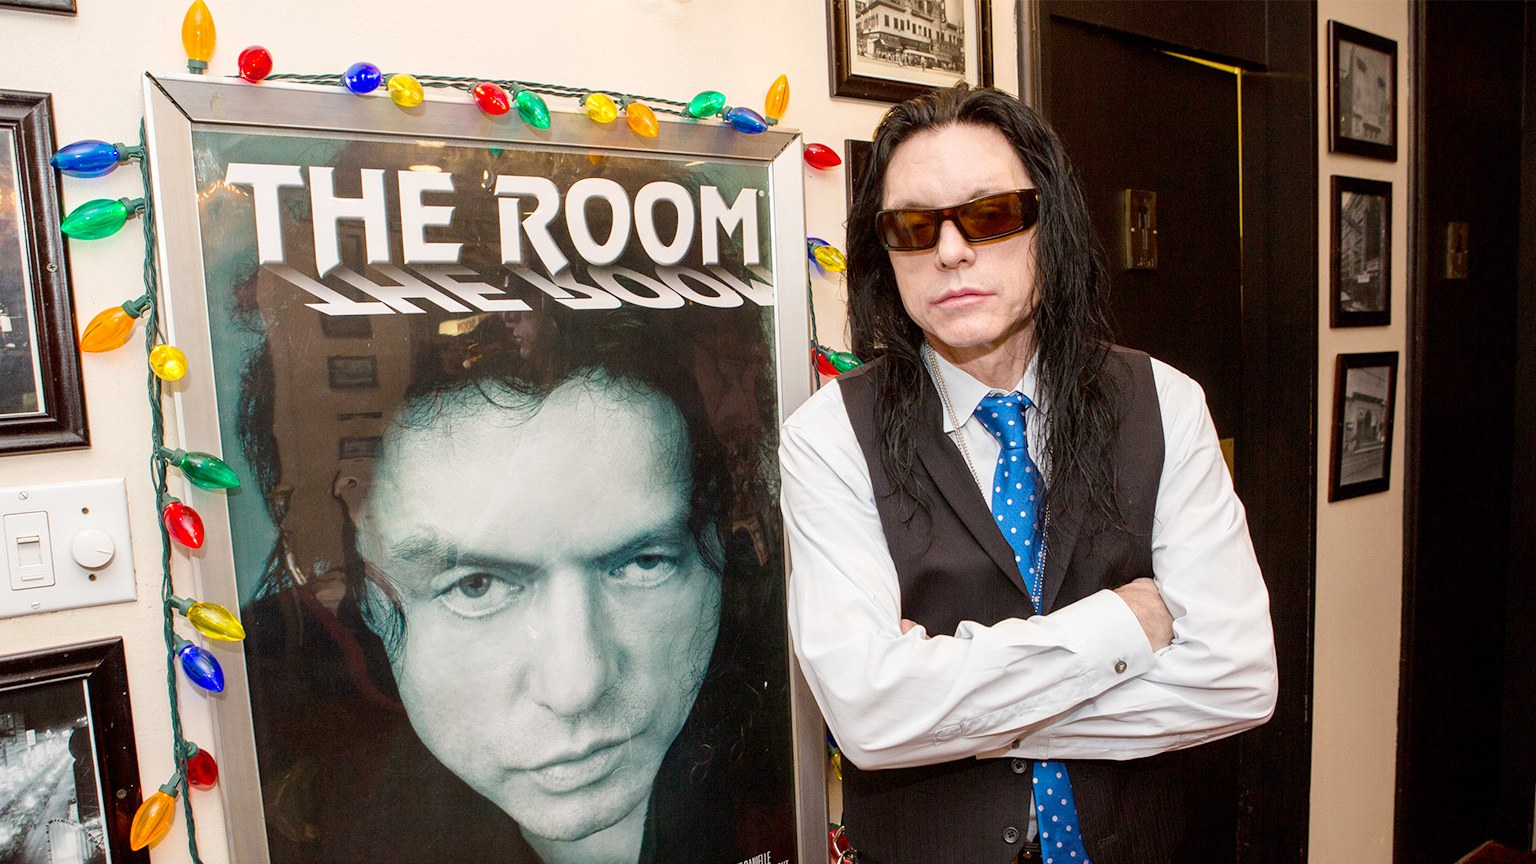 Prepare Your Spoons: The Room Is Getting a Wide Theatrical Release